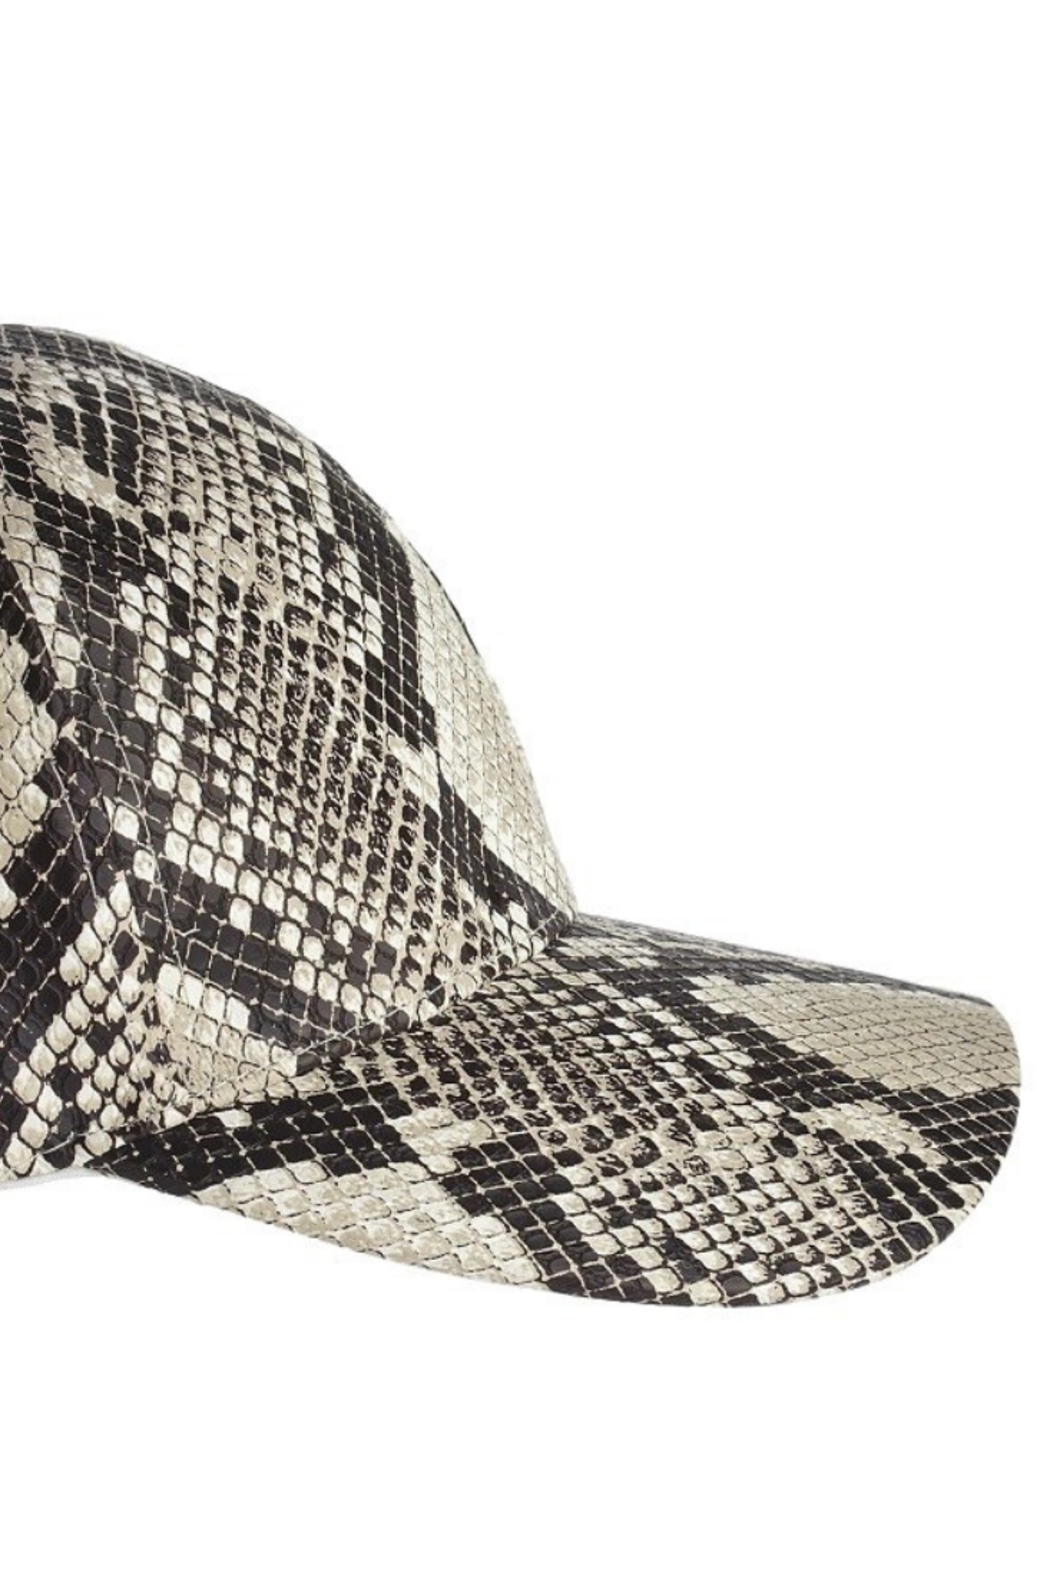 Olive & Pique Snakeskin Baseball Cap - Side Cropped Image